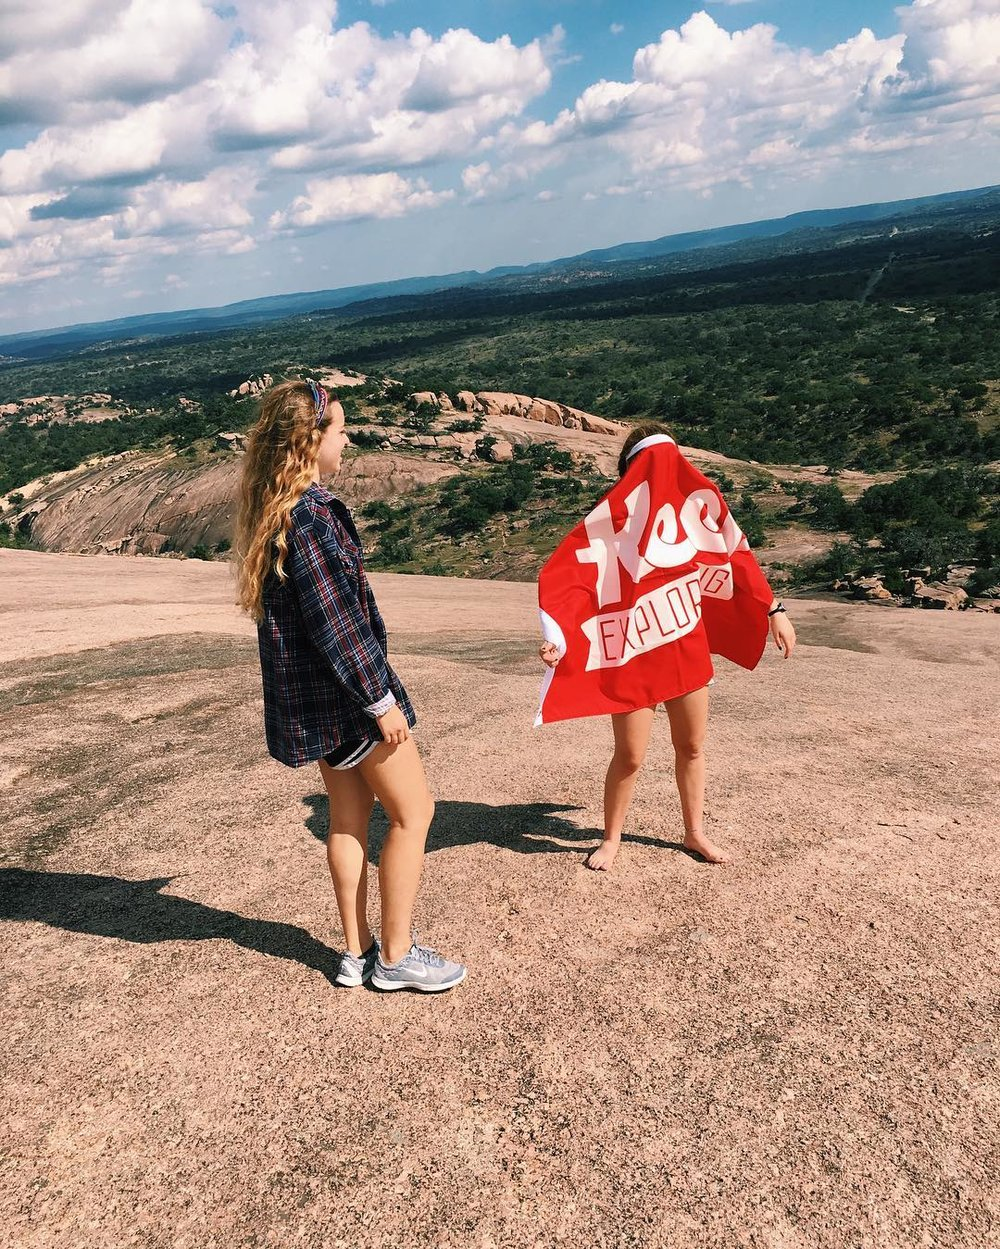 @hannah_marie61 and her friends climbed at Enchanted Rock (and had a blast at the top). Sometimes getting those flag shots are hard though!